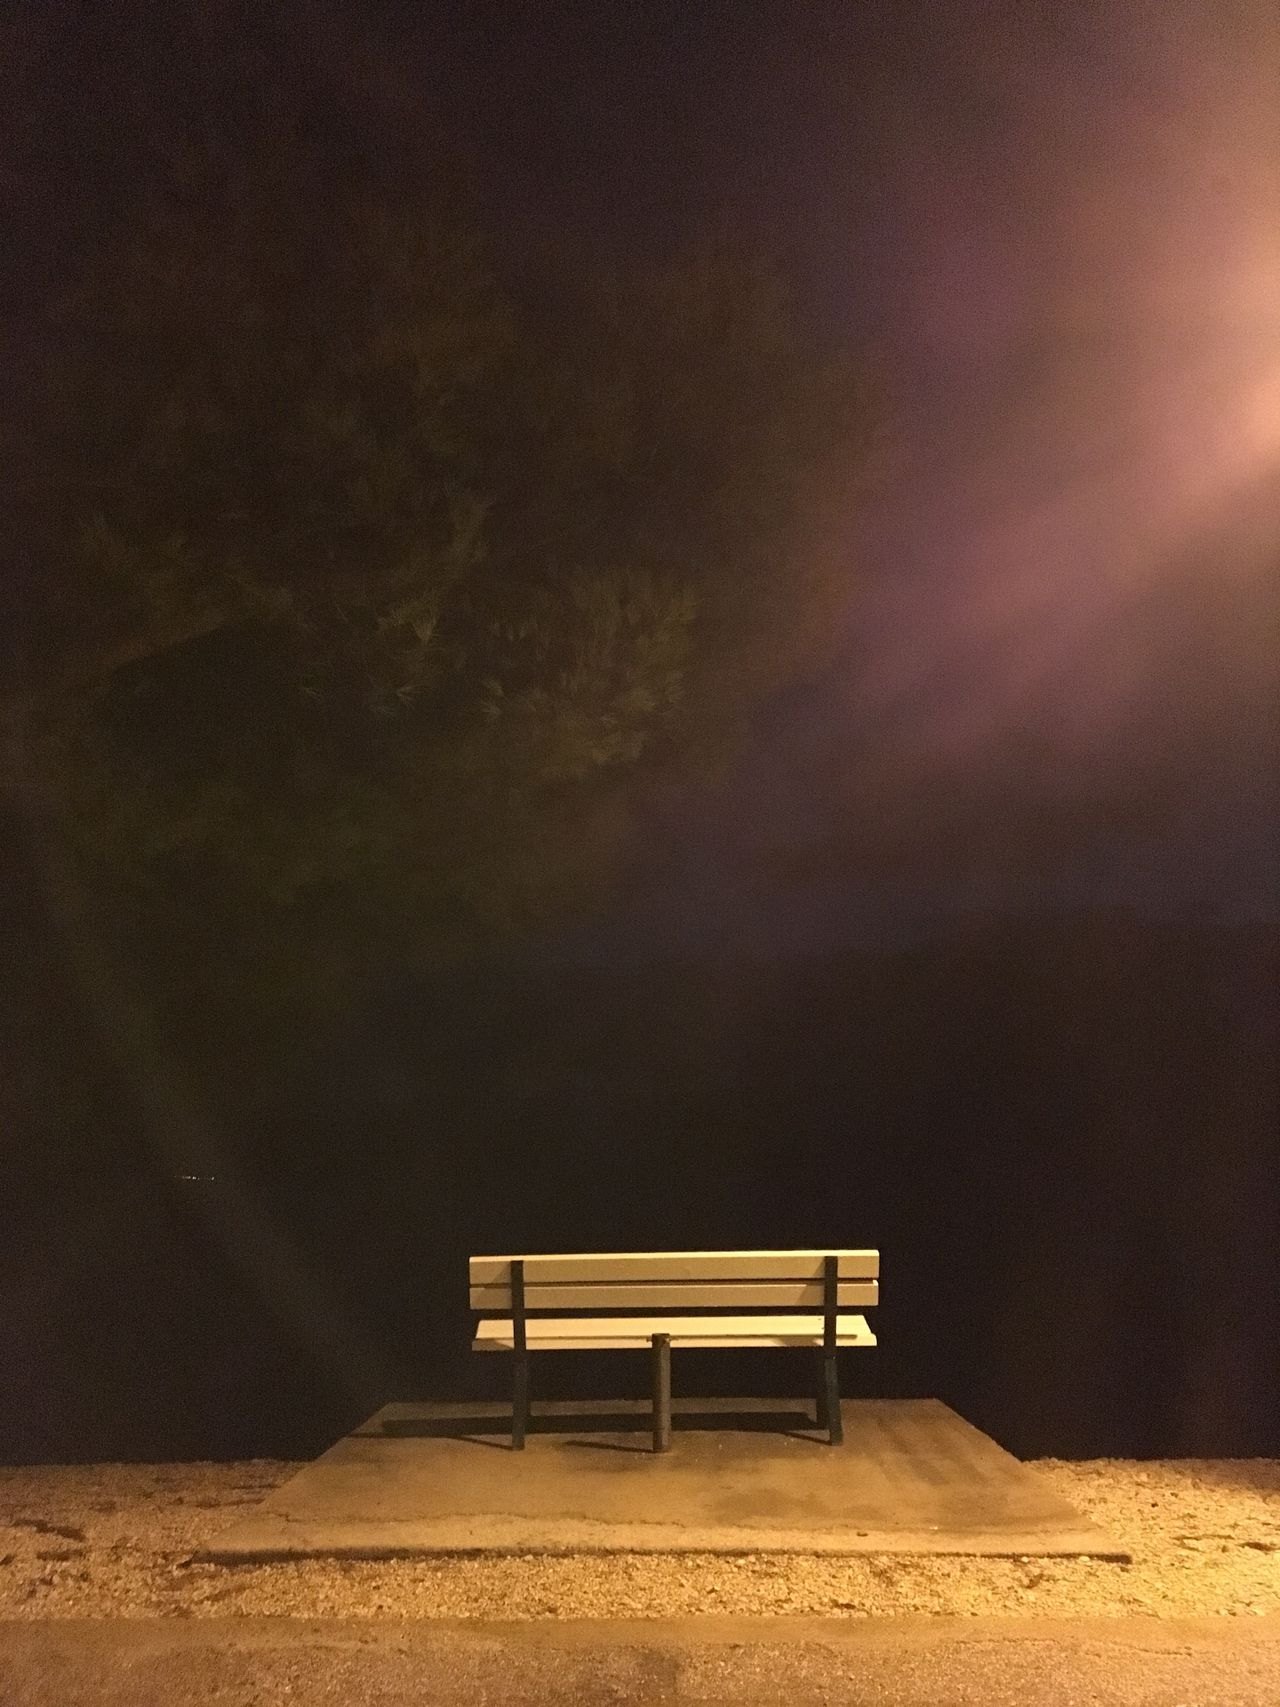 Bench Chair Landscape Minimal Night No People Outdoors Seat Surreal